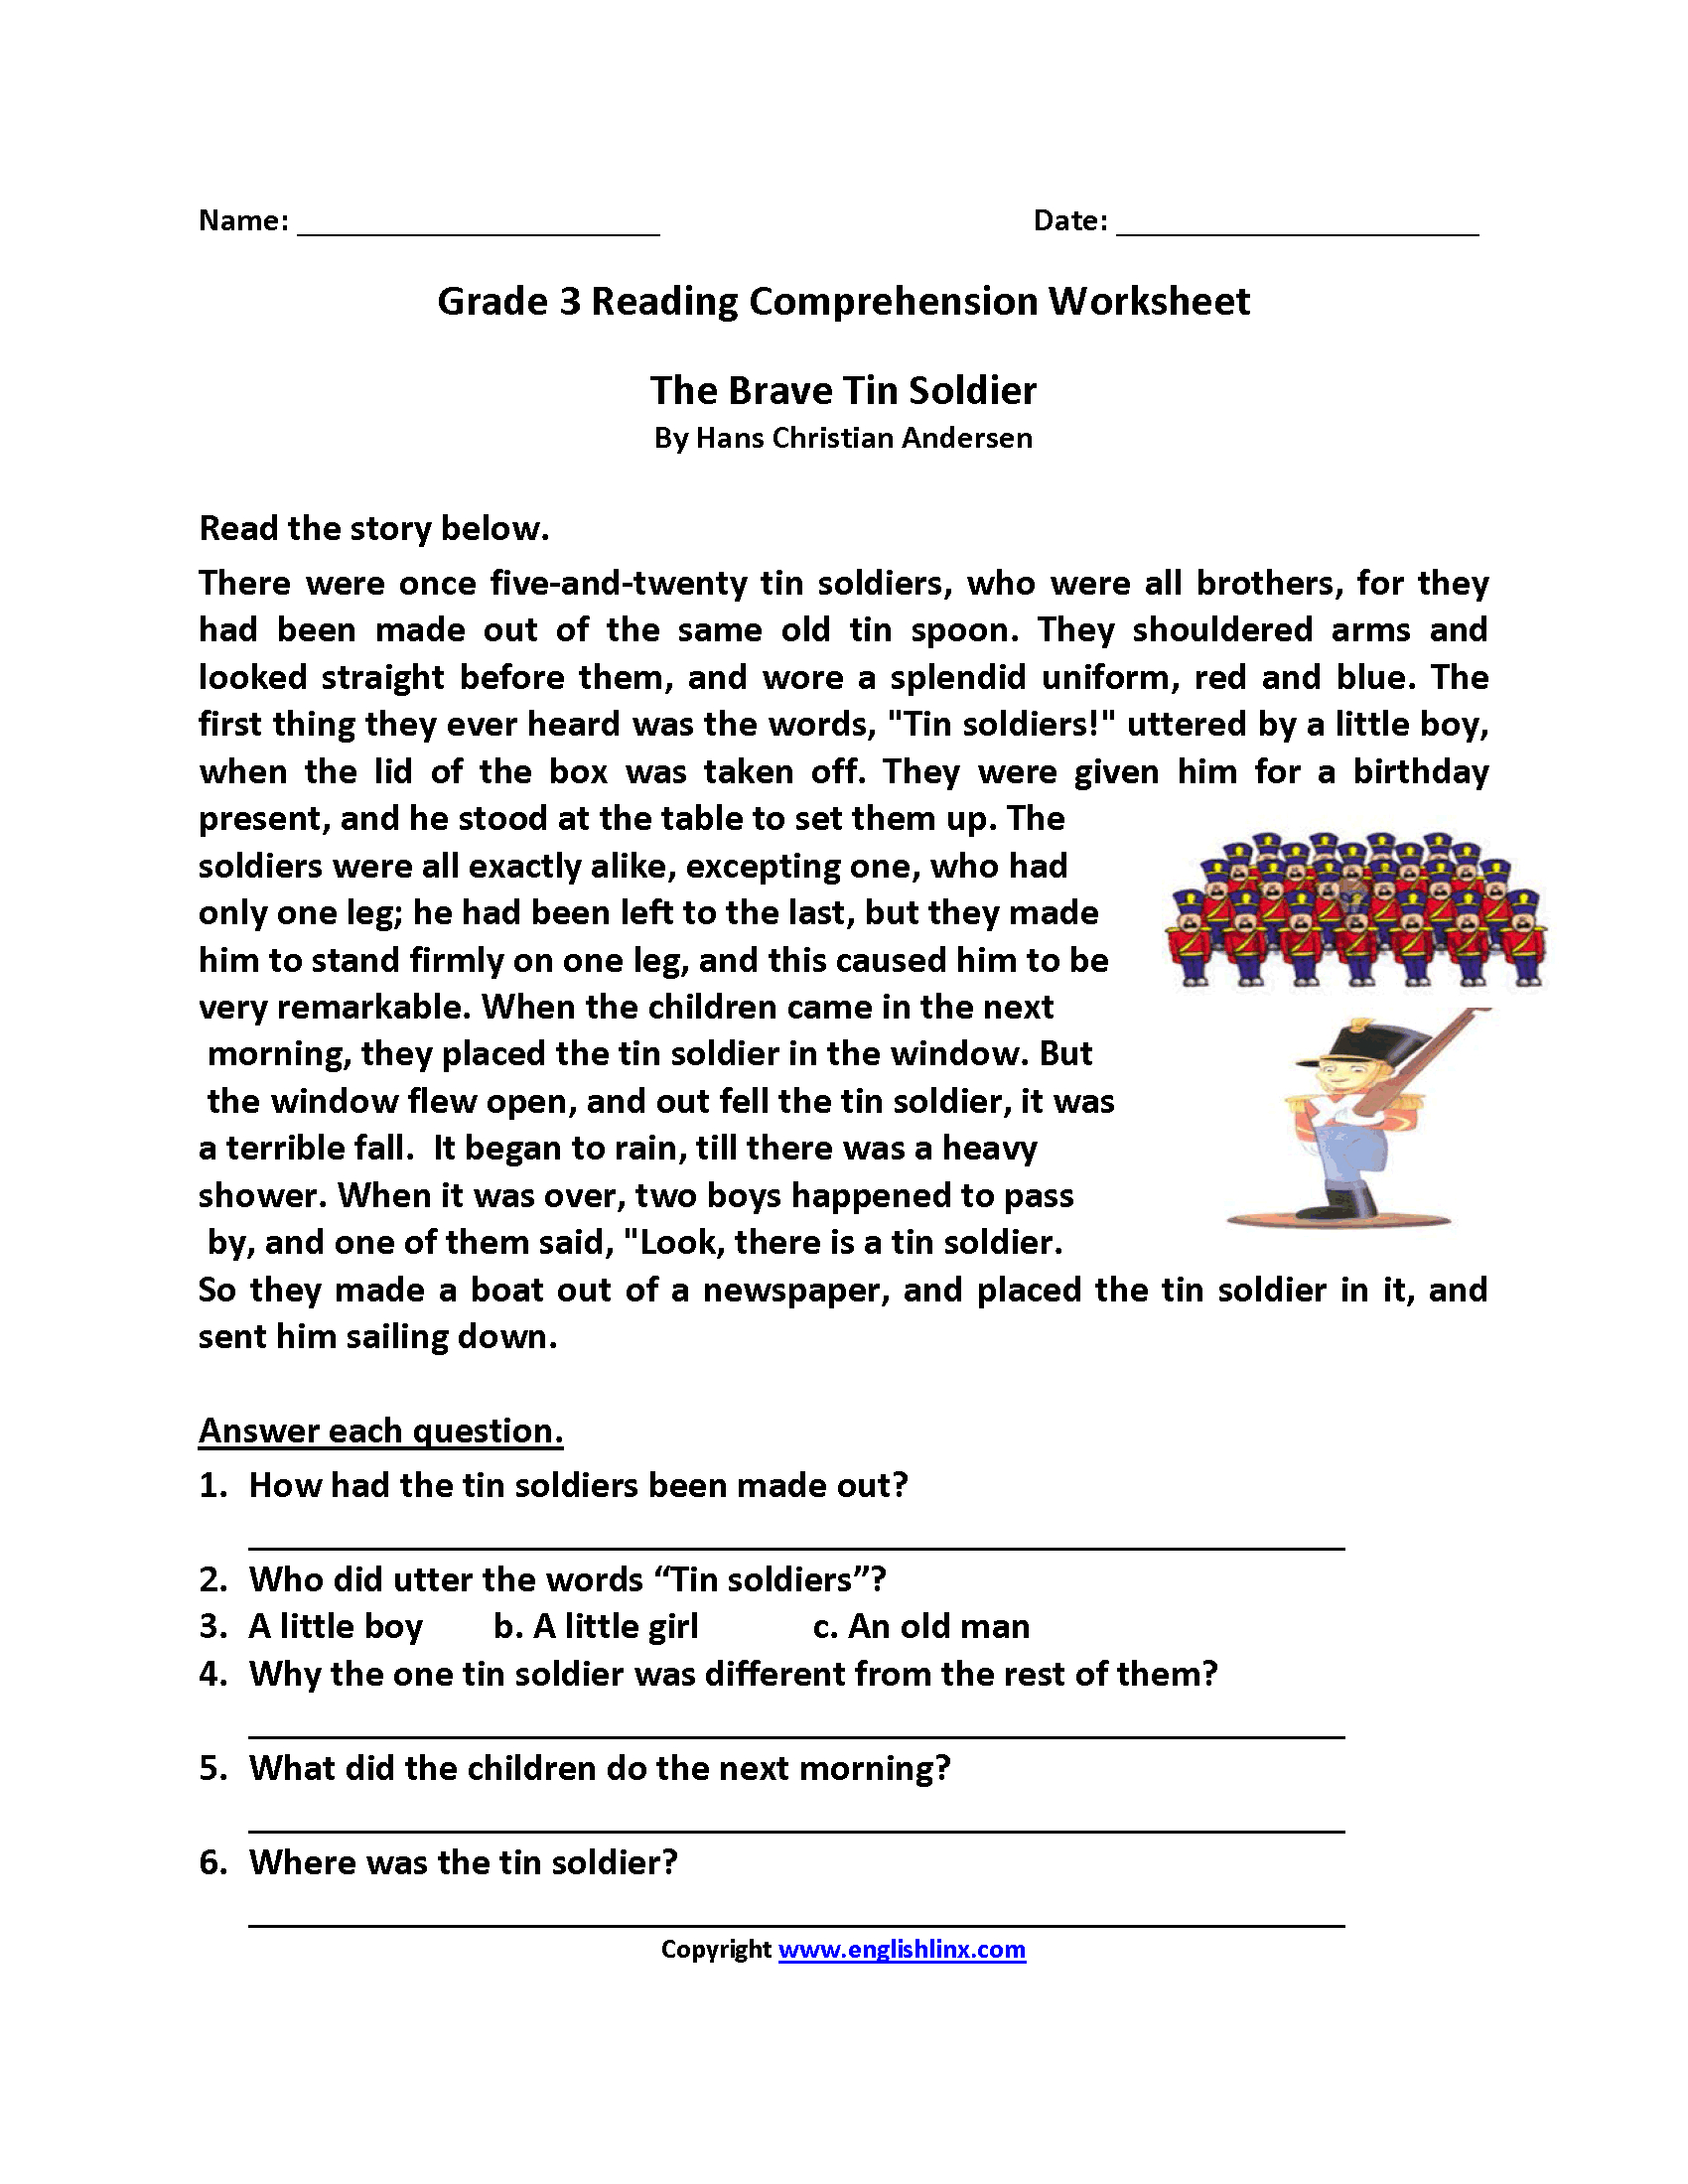 Free Printable Reading Comprehension Worksheets 3Rd Grade For Free | Free Printable Reading Comprehension Worksheets For 3Rd Grade